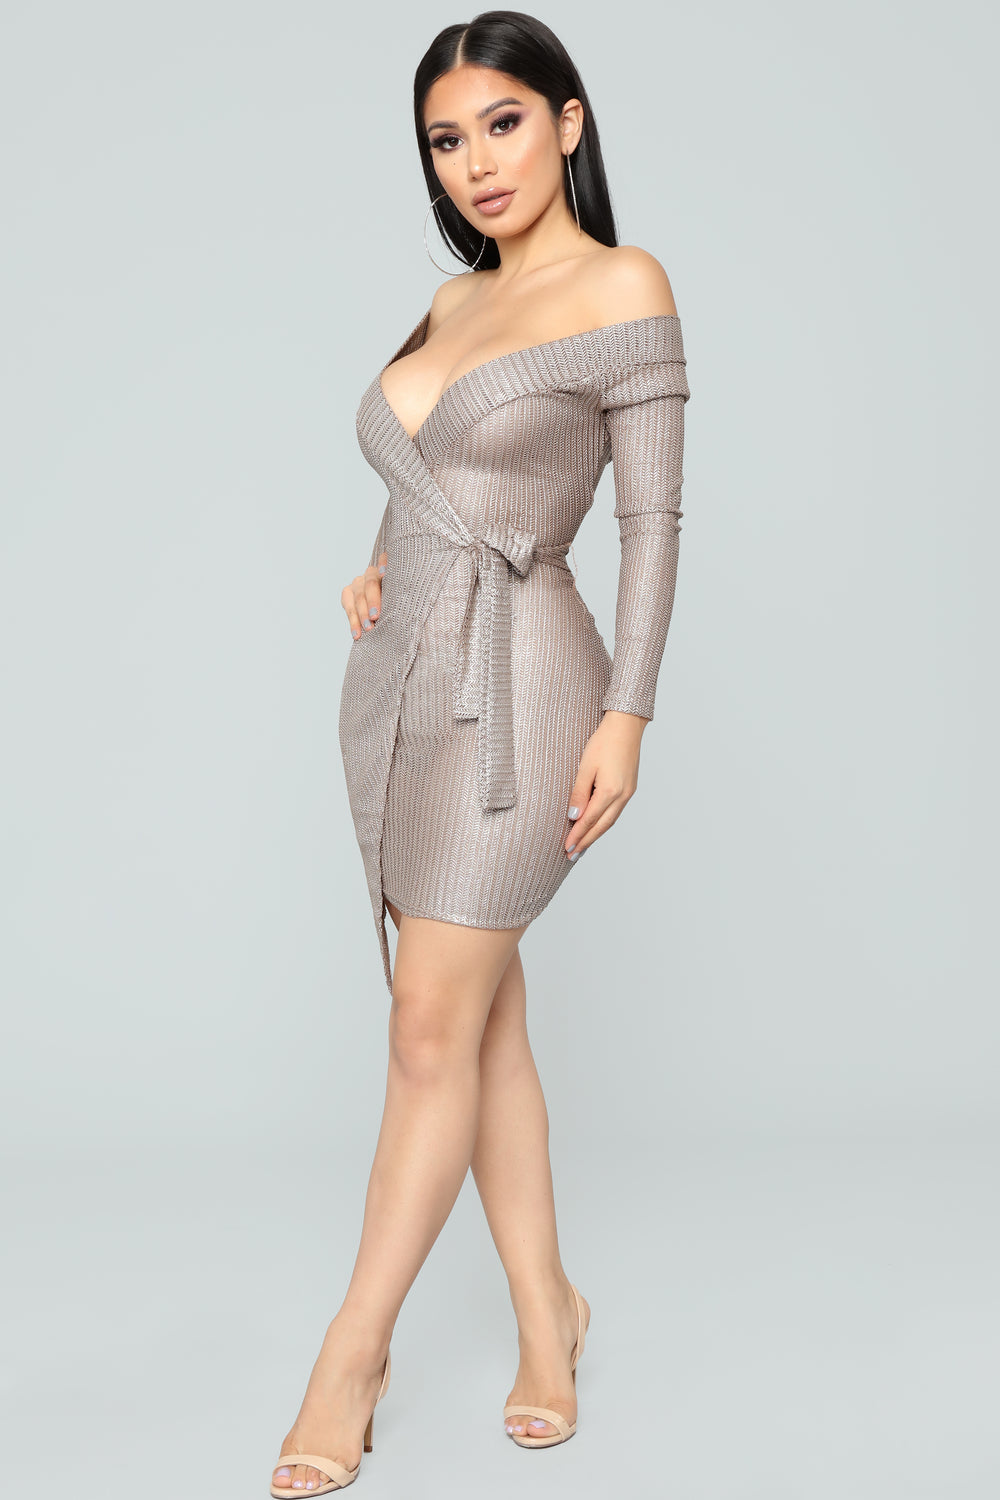 Around And About Metallic Dress - Mocha/Silver